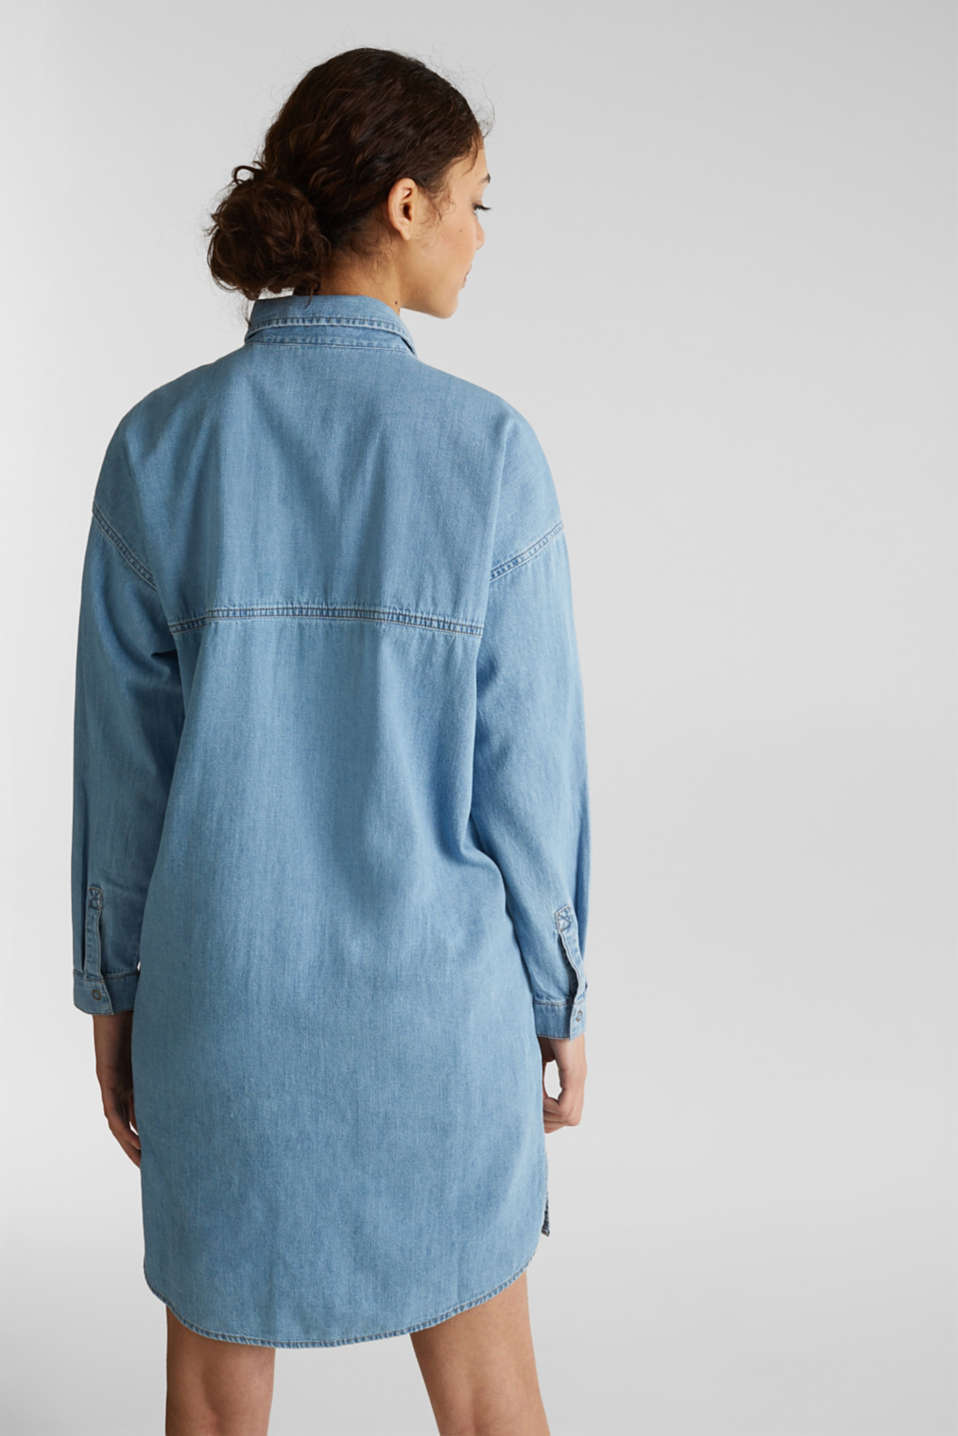 100% cotton denim shirt dress, BLUE LIGHT WASH, detail image number 2